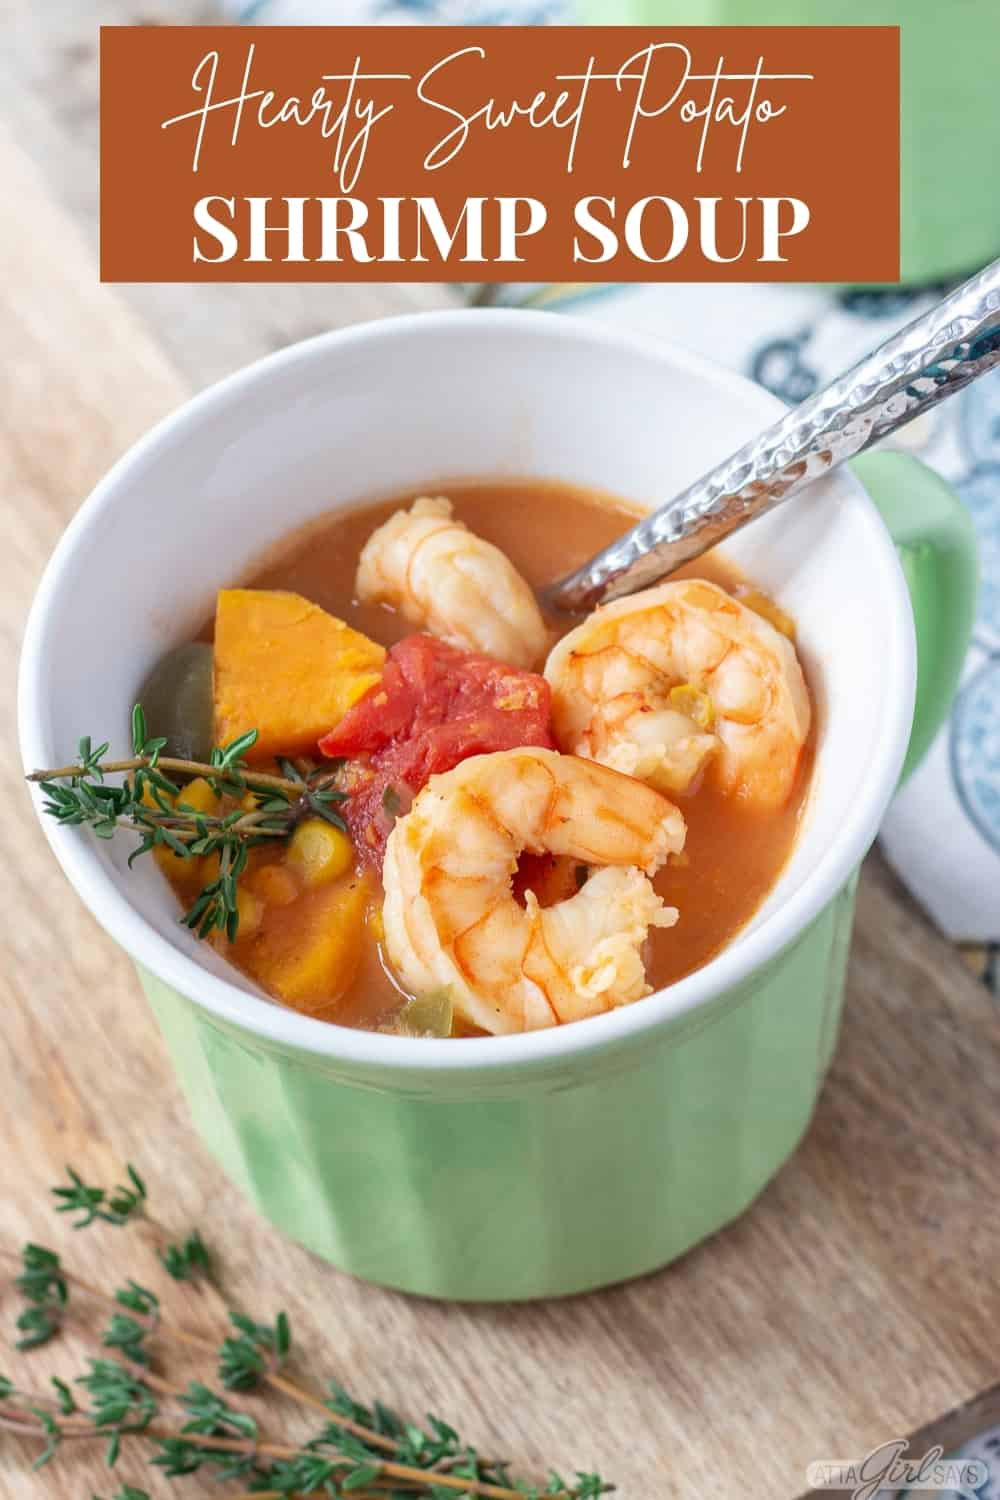 bowl of shrimp soup with text overlay